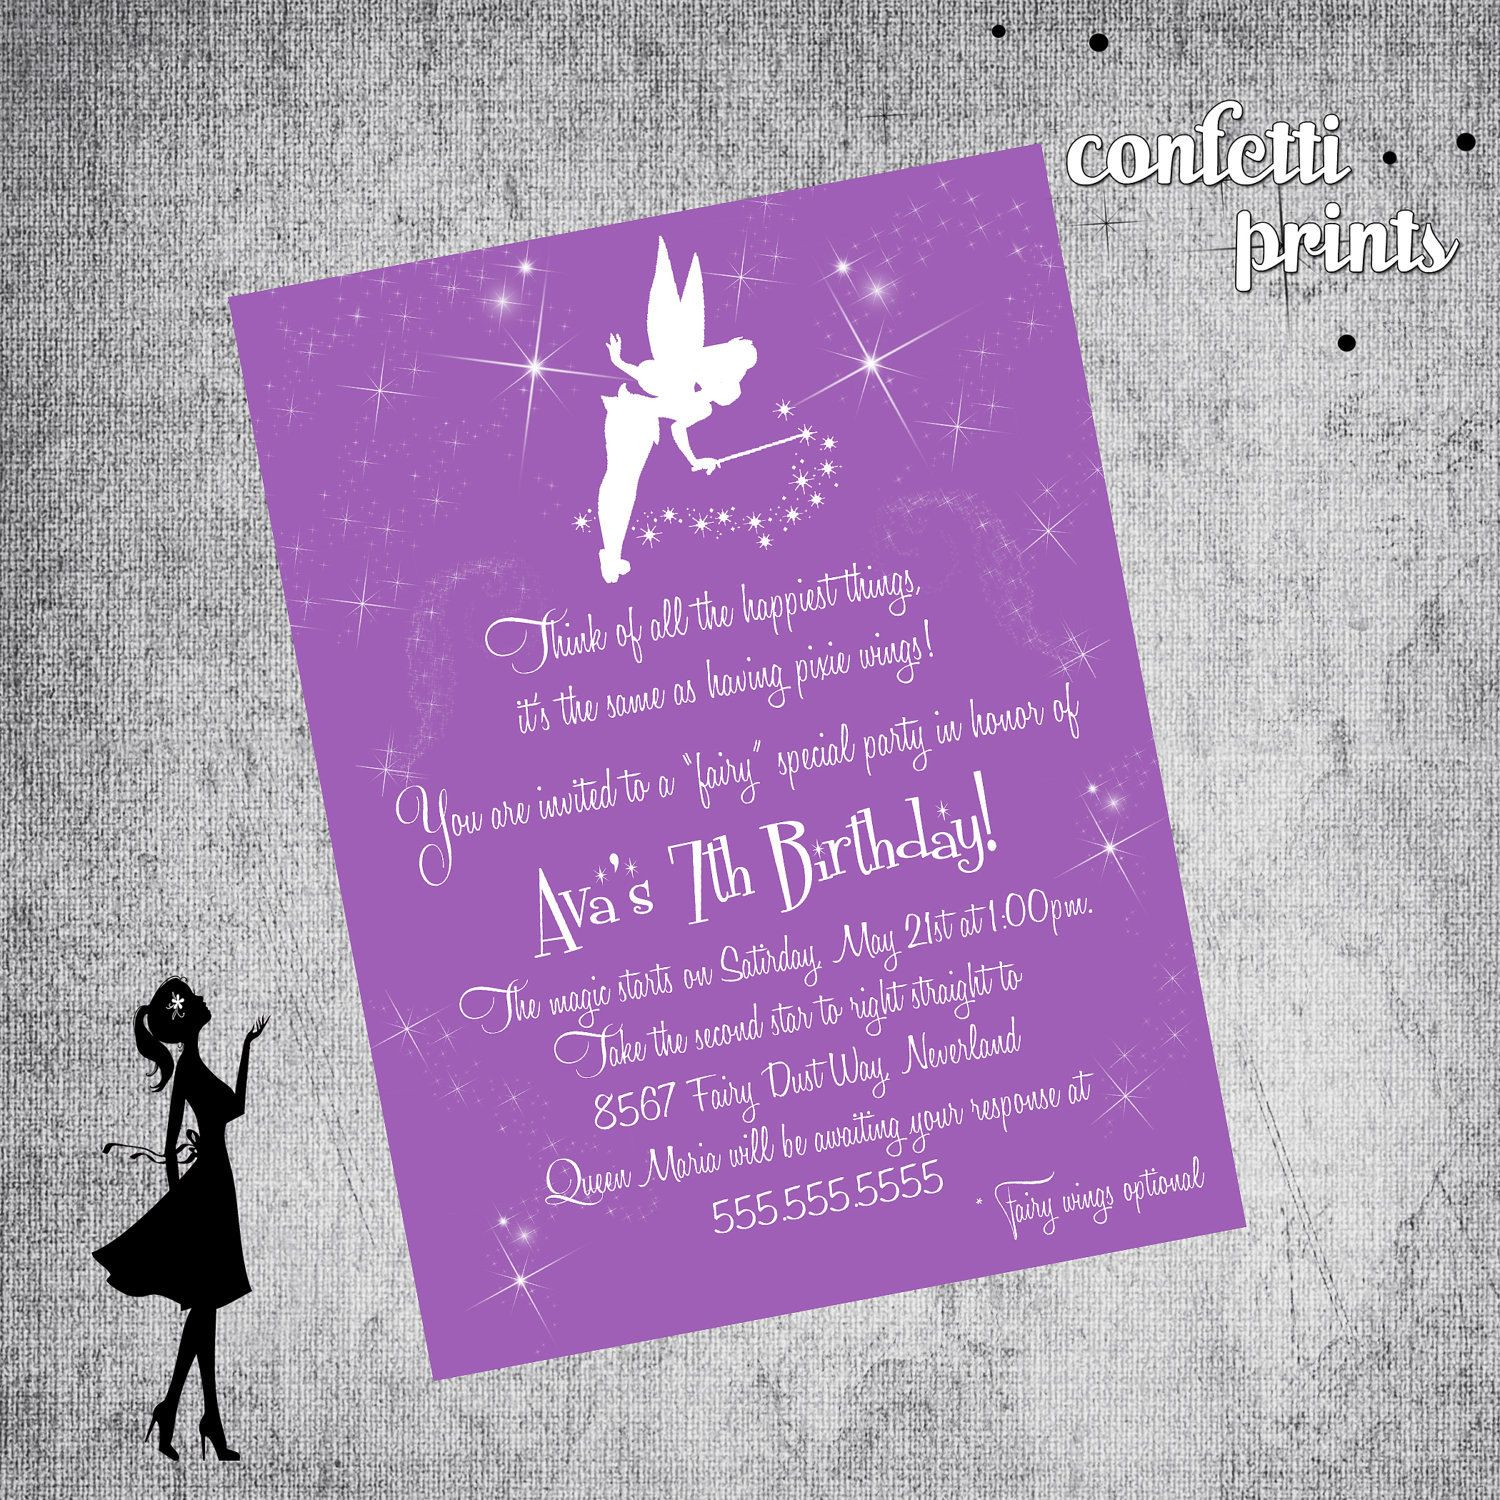 happy birthday invitation pictures%0A Printable Birthday Invitation TINKERBELL by confettiprintables